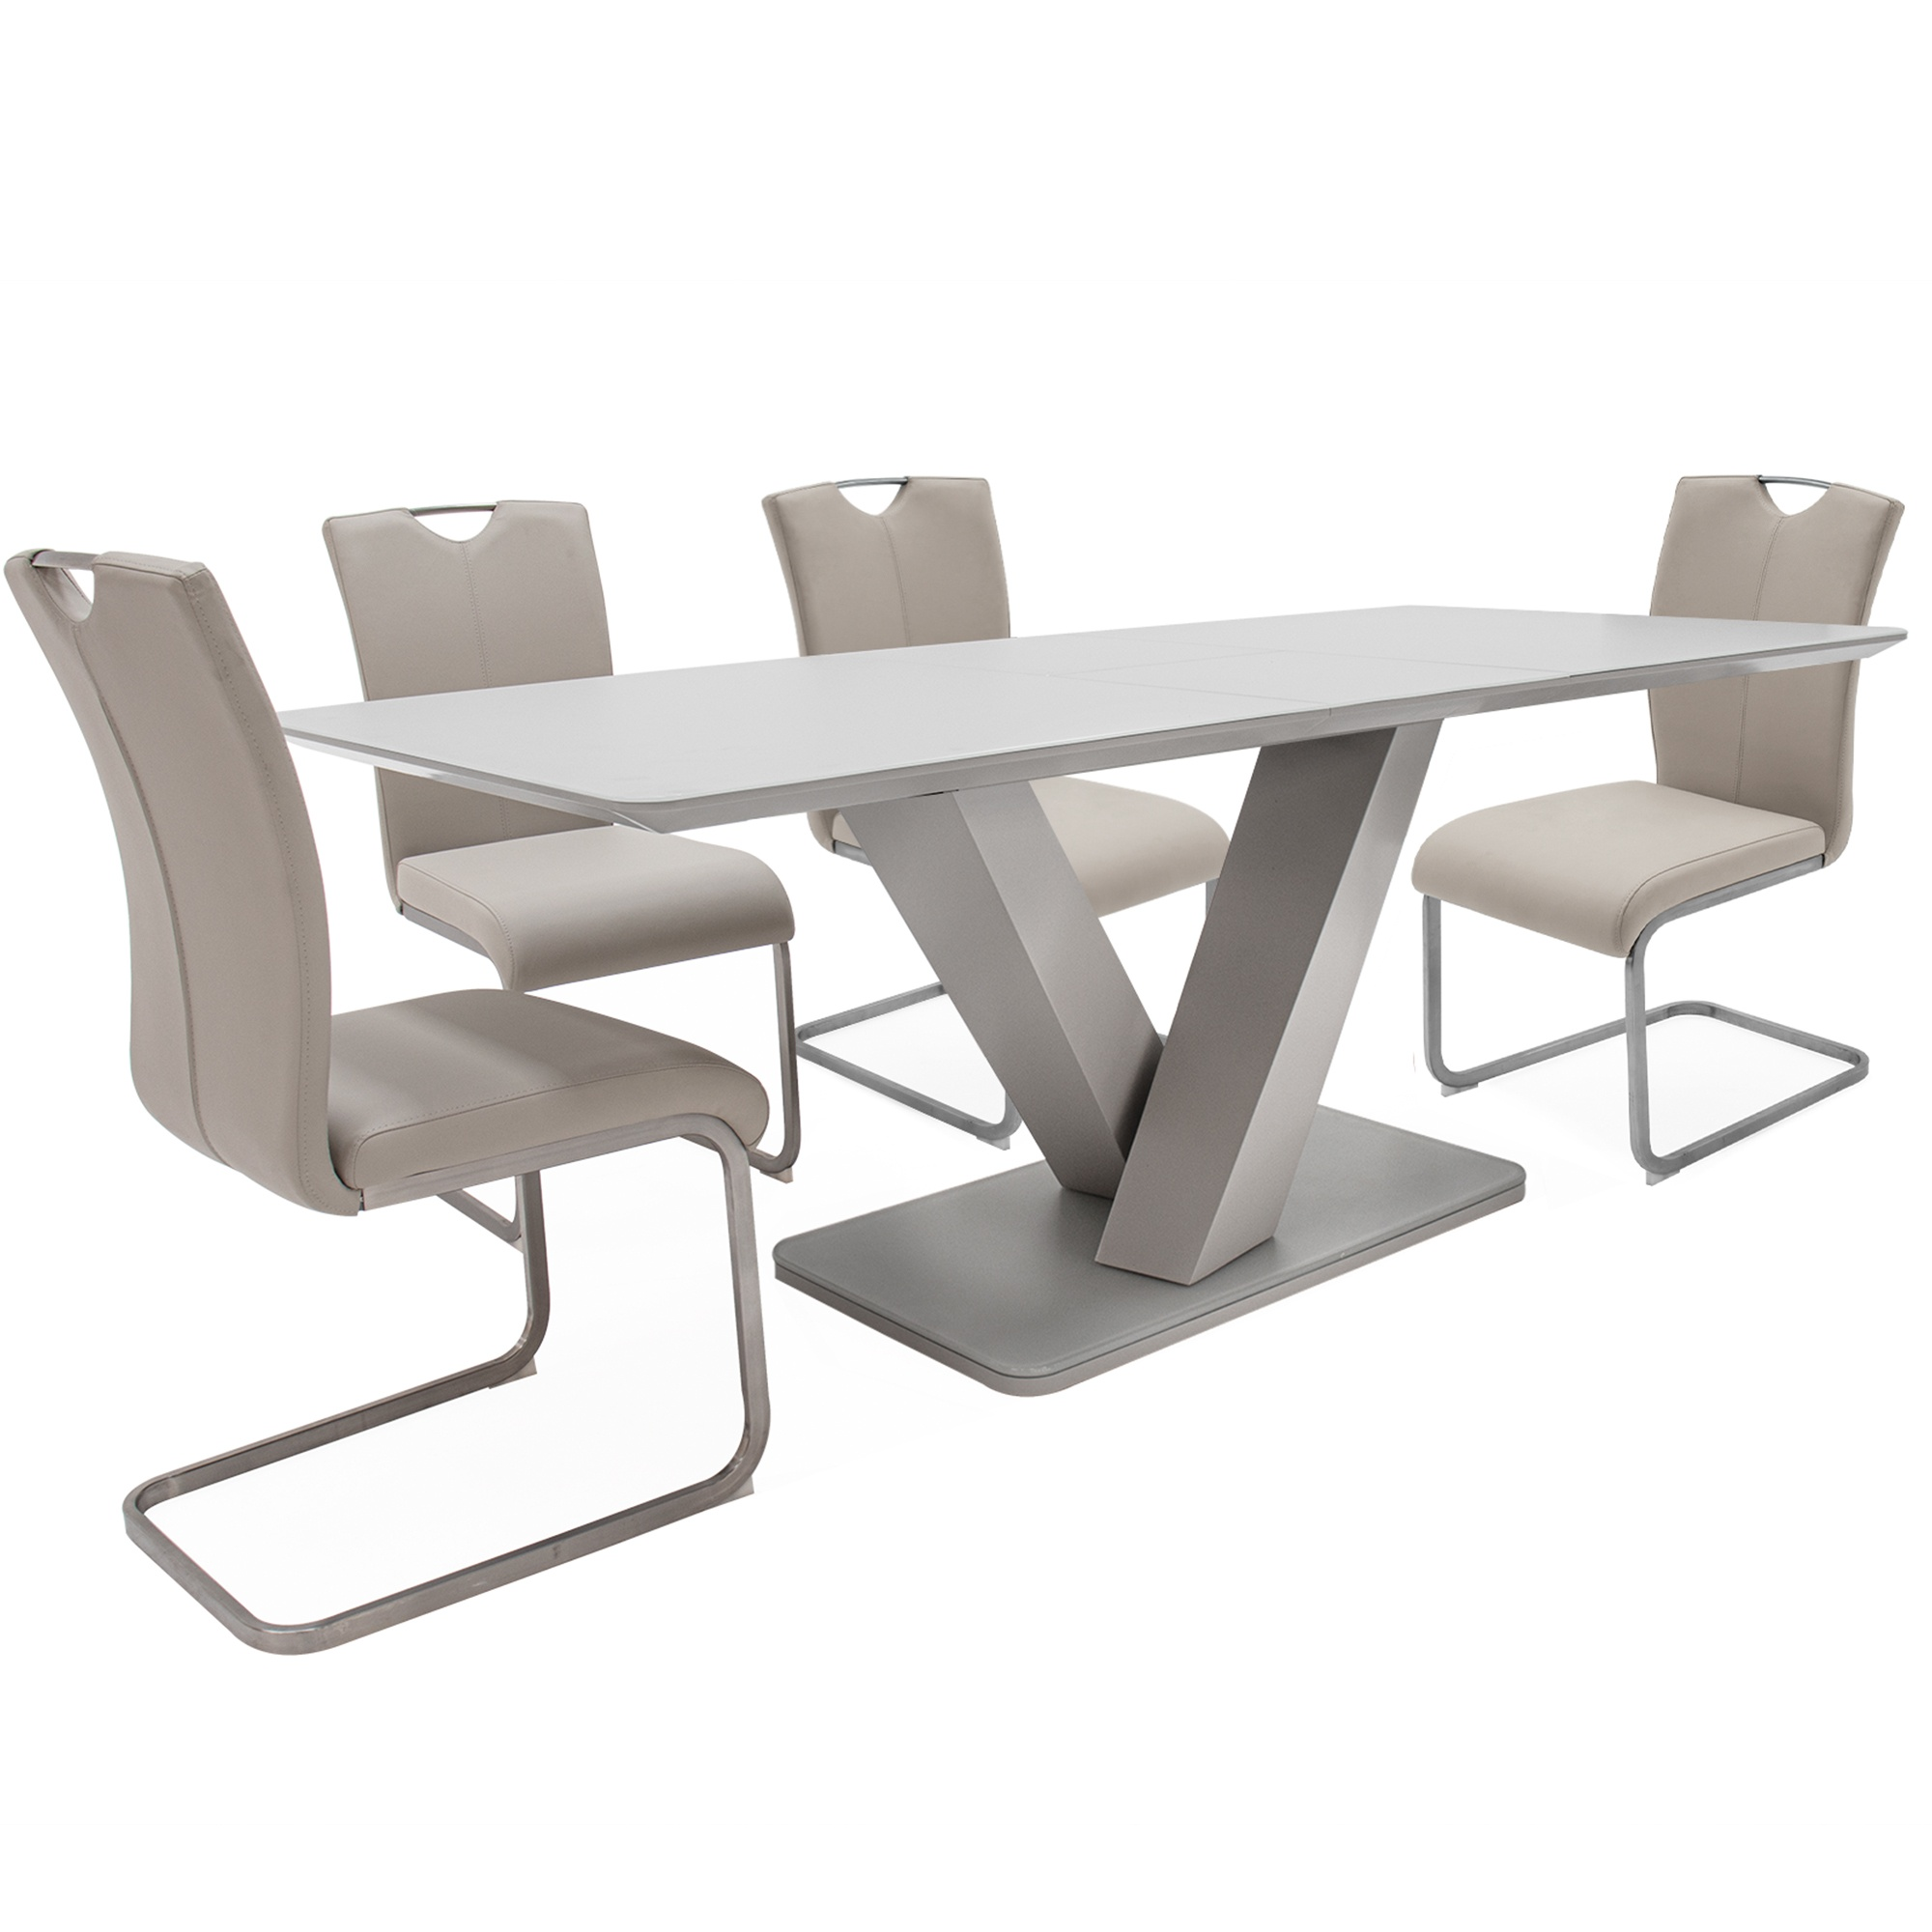 Cookes Collection Ralph Large Extending Dining Table 4 Taupe Chairs Dining Furniture Cookes Furniture